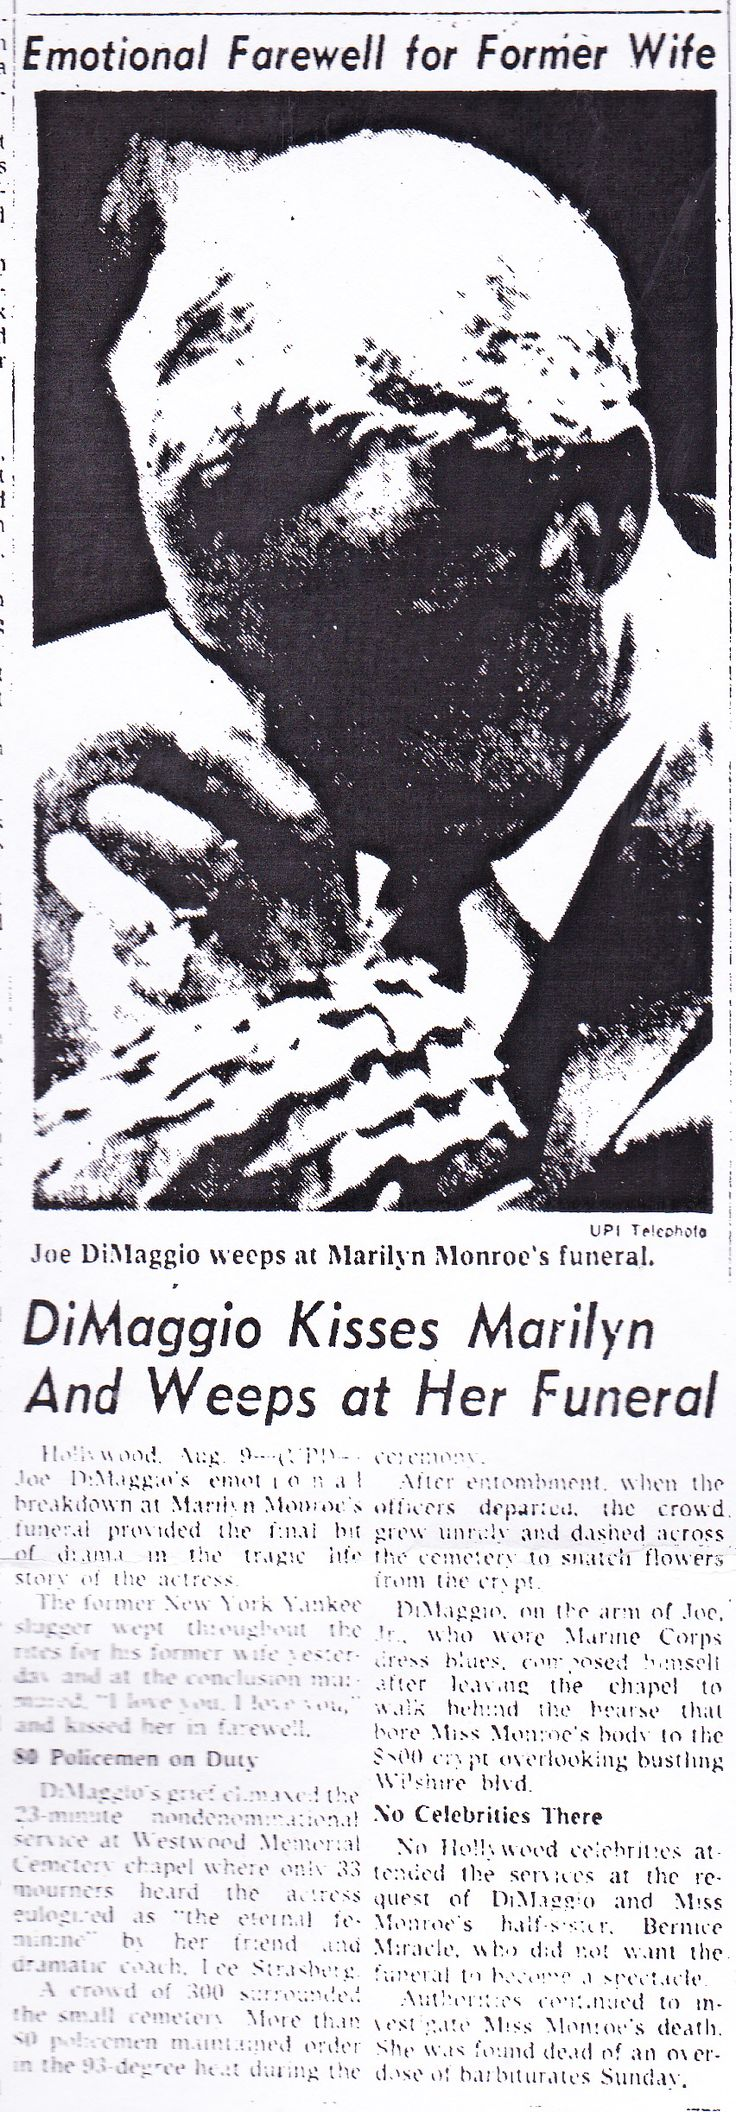 Joe Di Maggio at Marilyn Monroe's funeral.  From The Evening Bulletin - Philadelphia; Thursday, August 9th, 1962, Page 31.